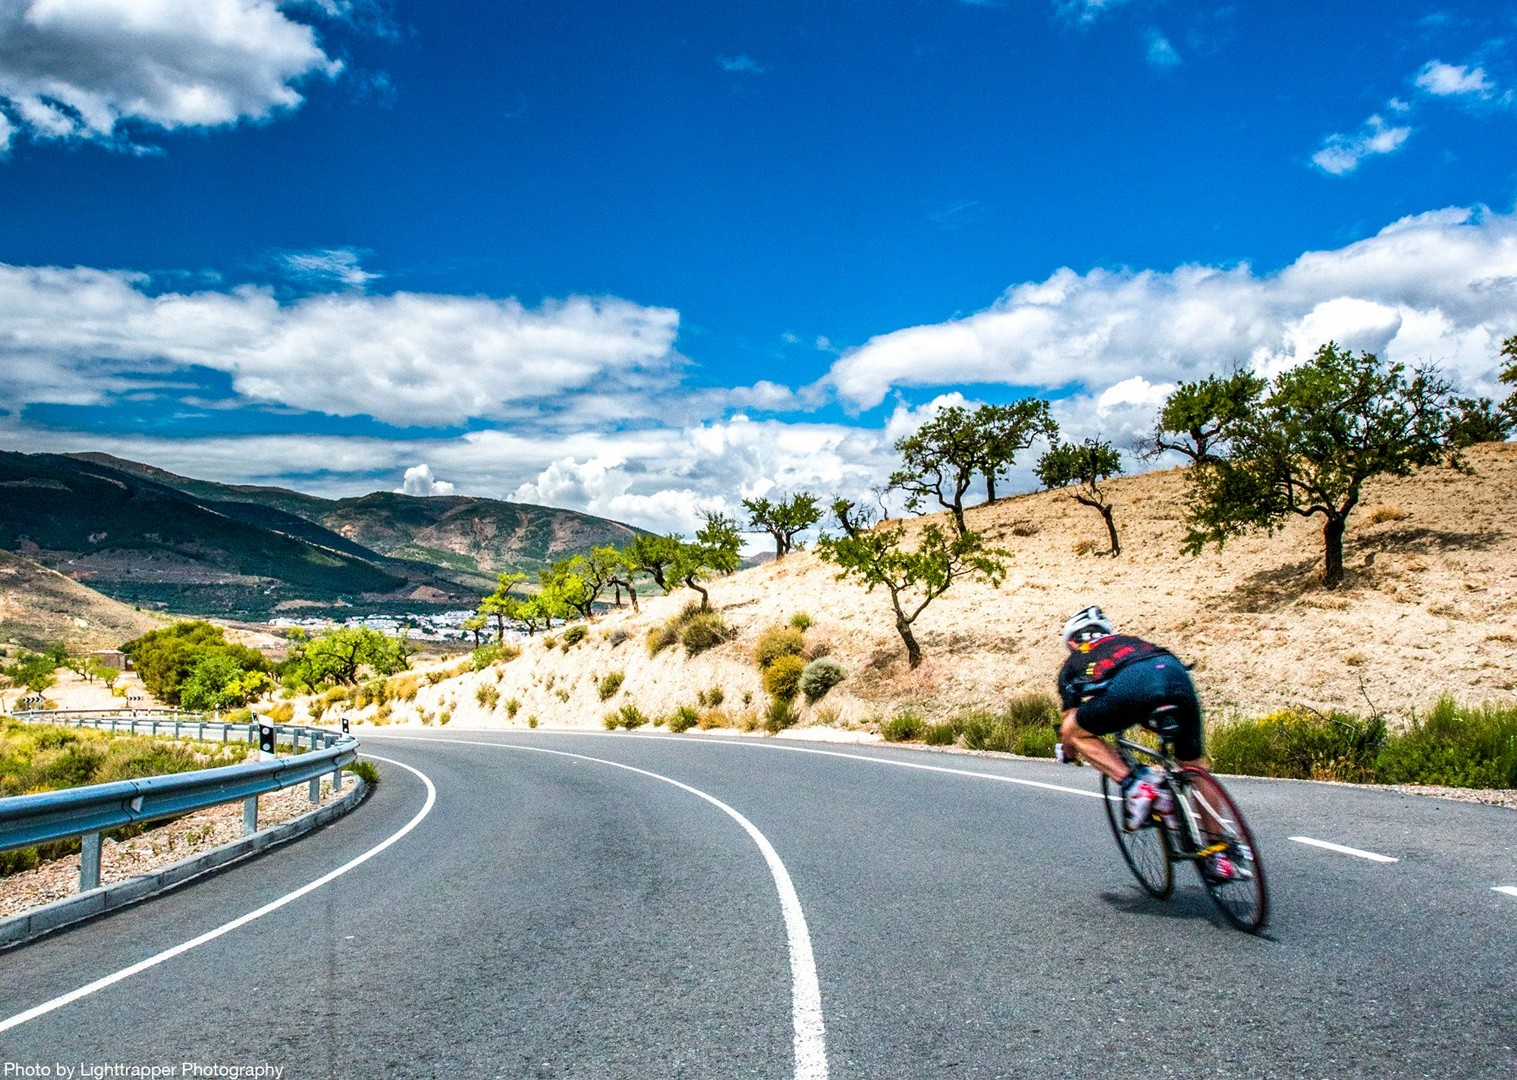 spain-guided-road-cycling-north-to-south-16-days-with-saddle-skedaddle.jpg - Spain - Basque Country to Andalucia - North to South (16 Days) - Guided Road Cycling Holiday - Road Cycling